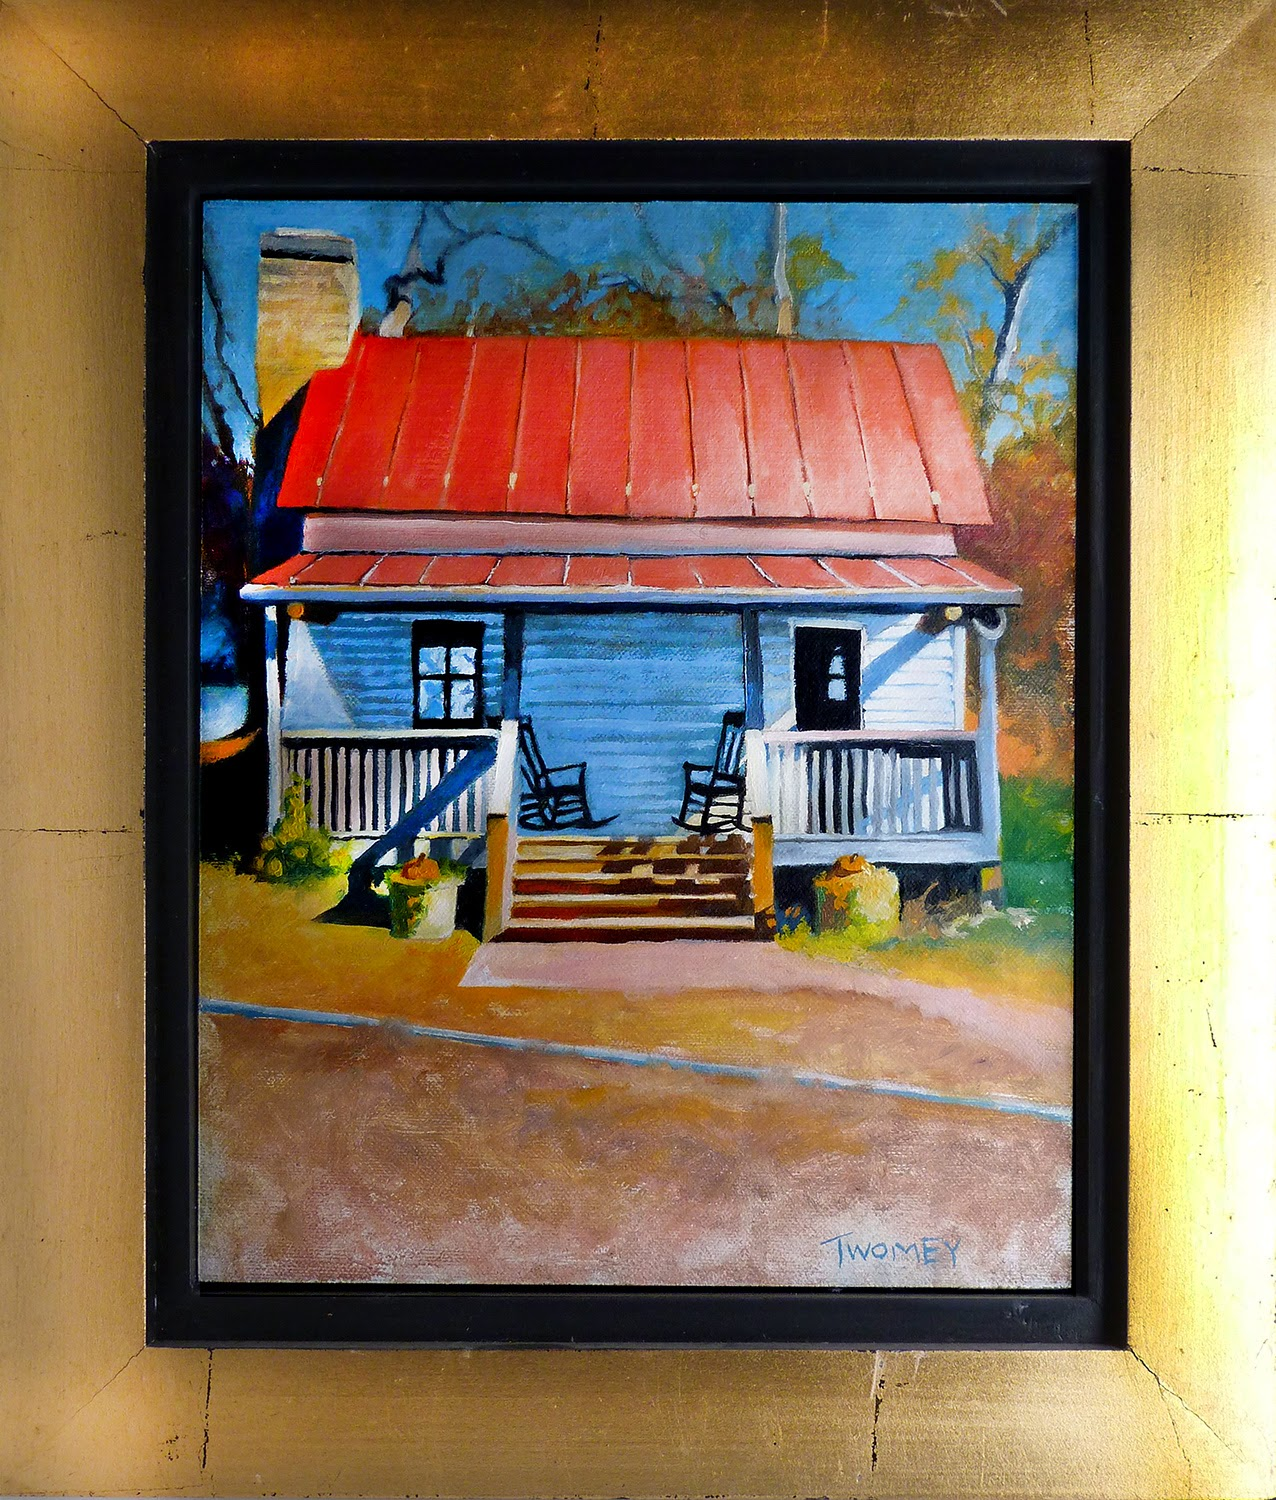 """Southern Homestead"" by C. Twomey"